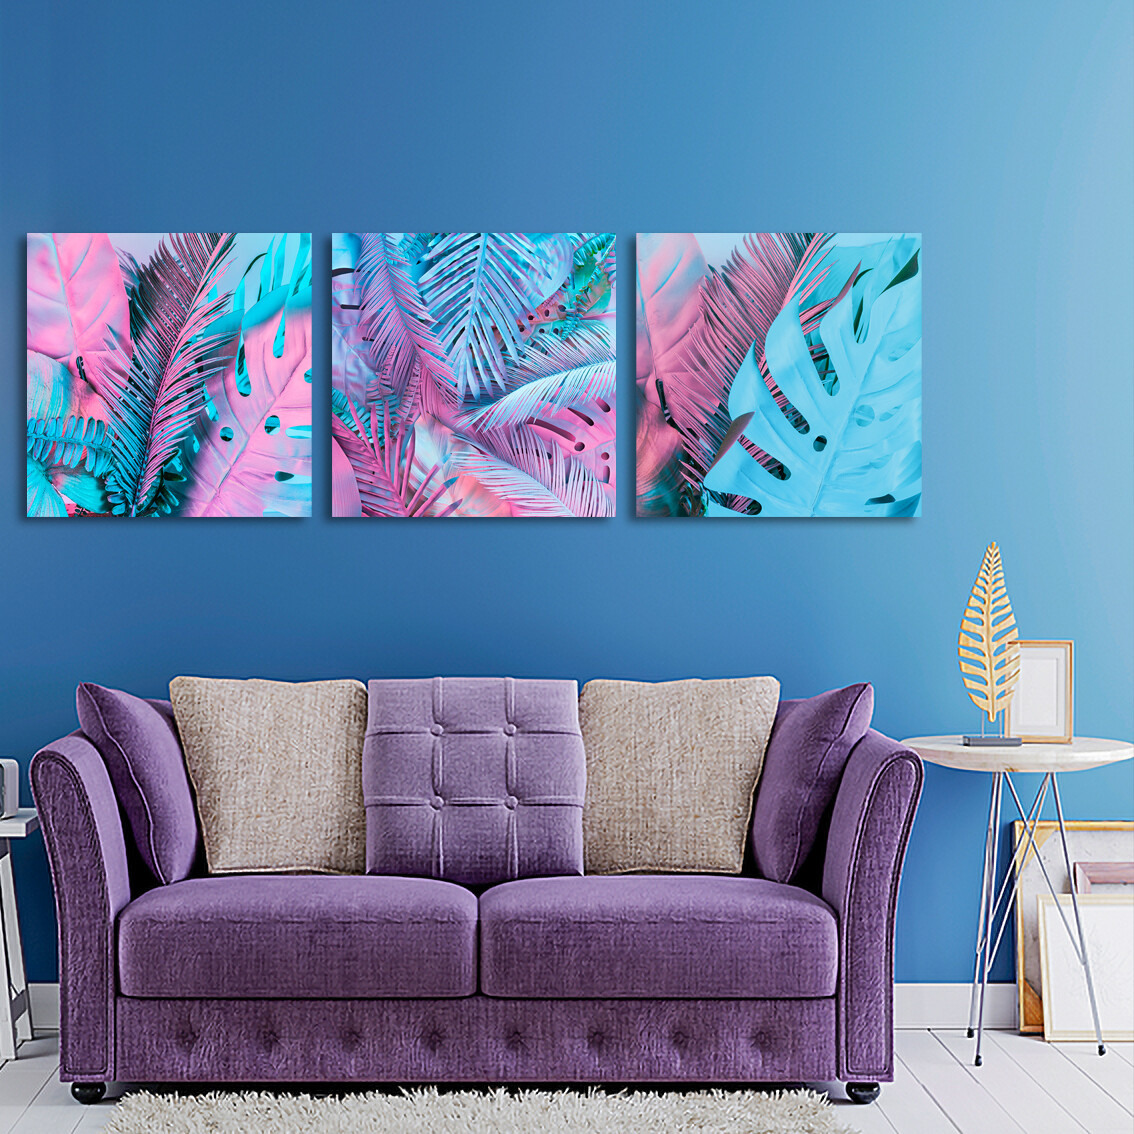 Palm Leaves  - Modern Luxury Wall art Printed on Acrylic Glass - Frameless and Ready to Hang